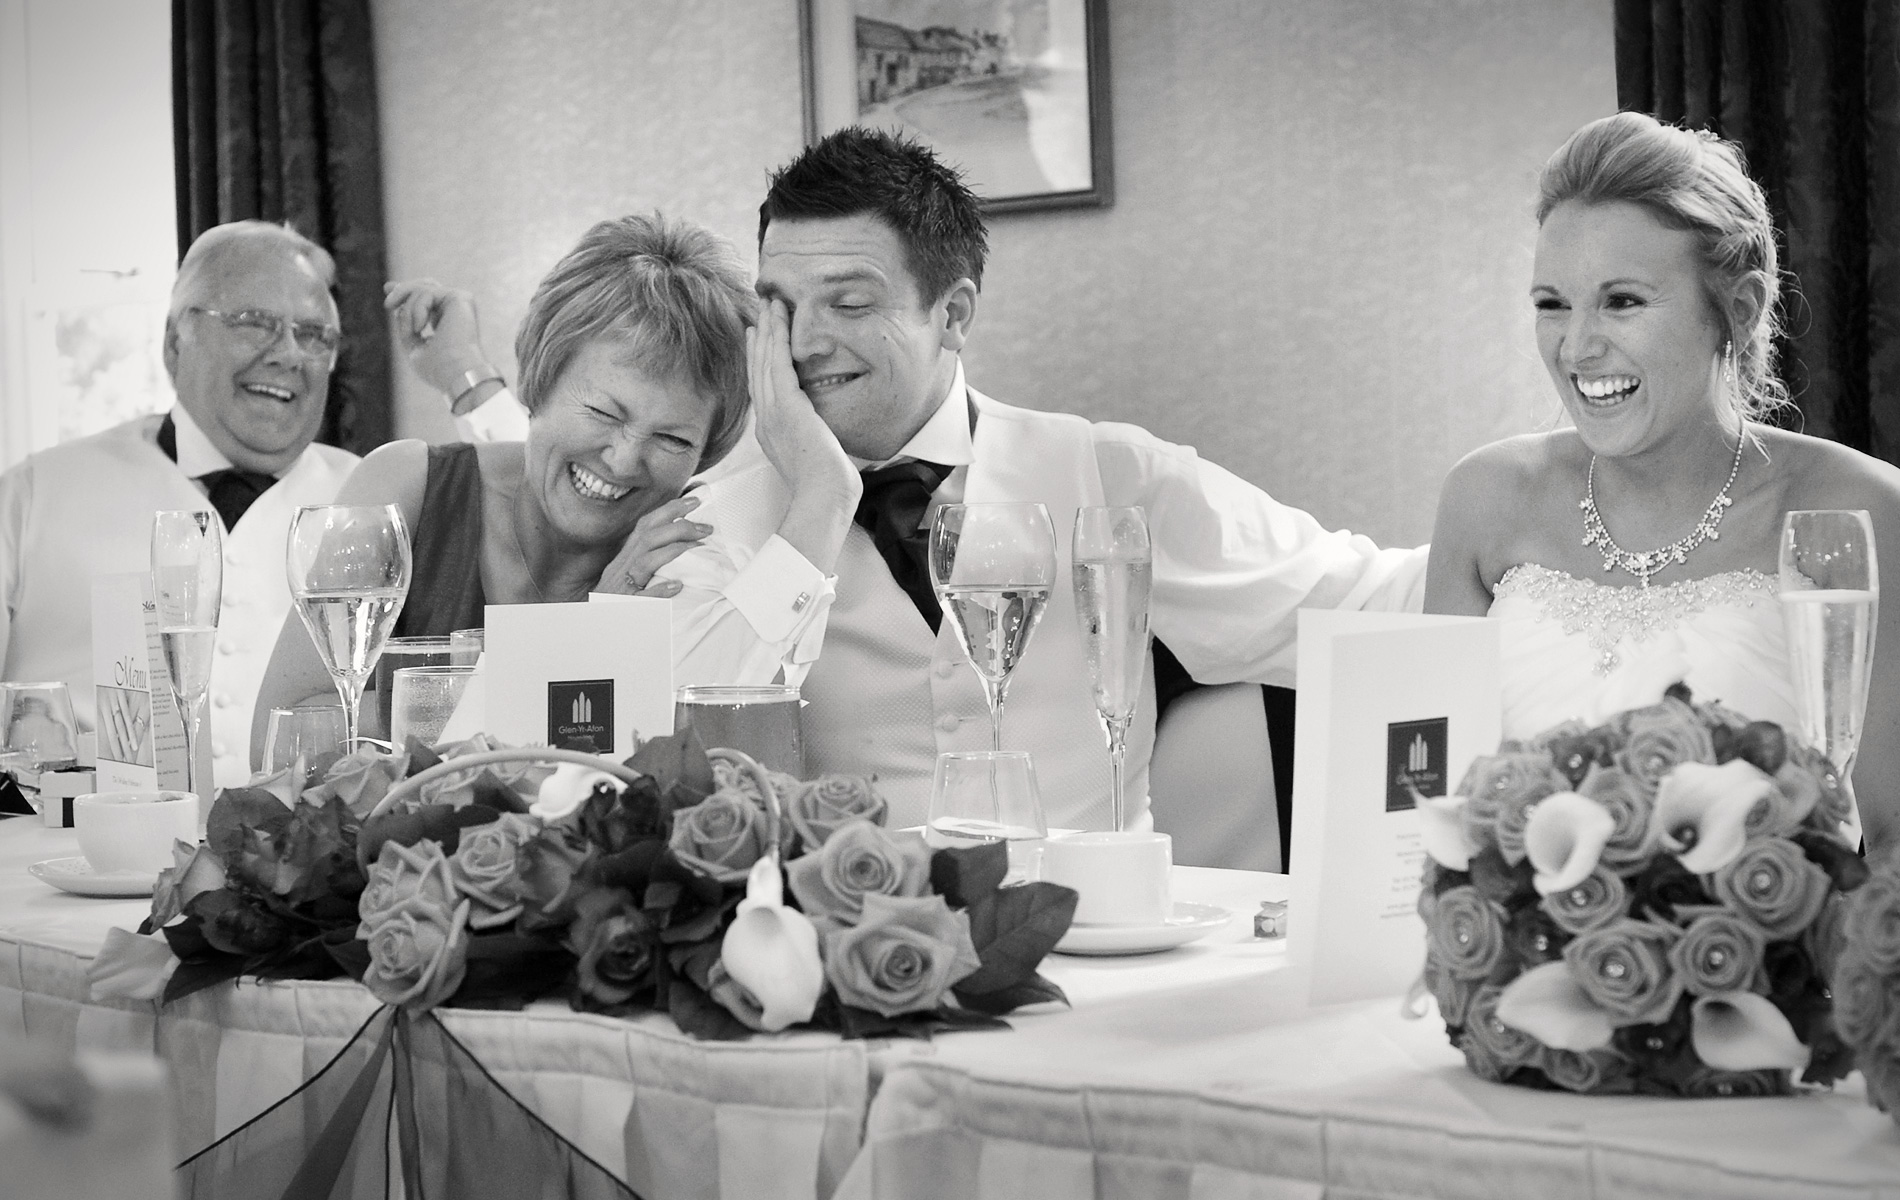 wedding speaches at the Glen-yr-afon hotel, Usk.